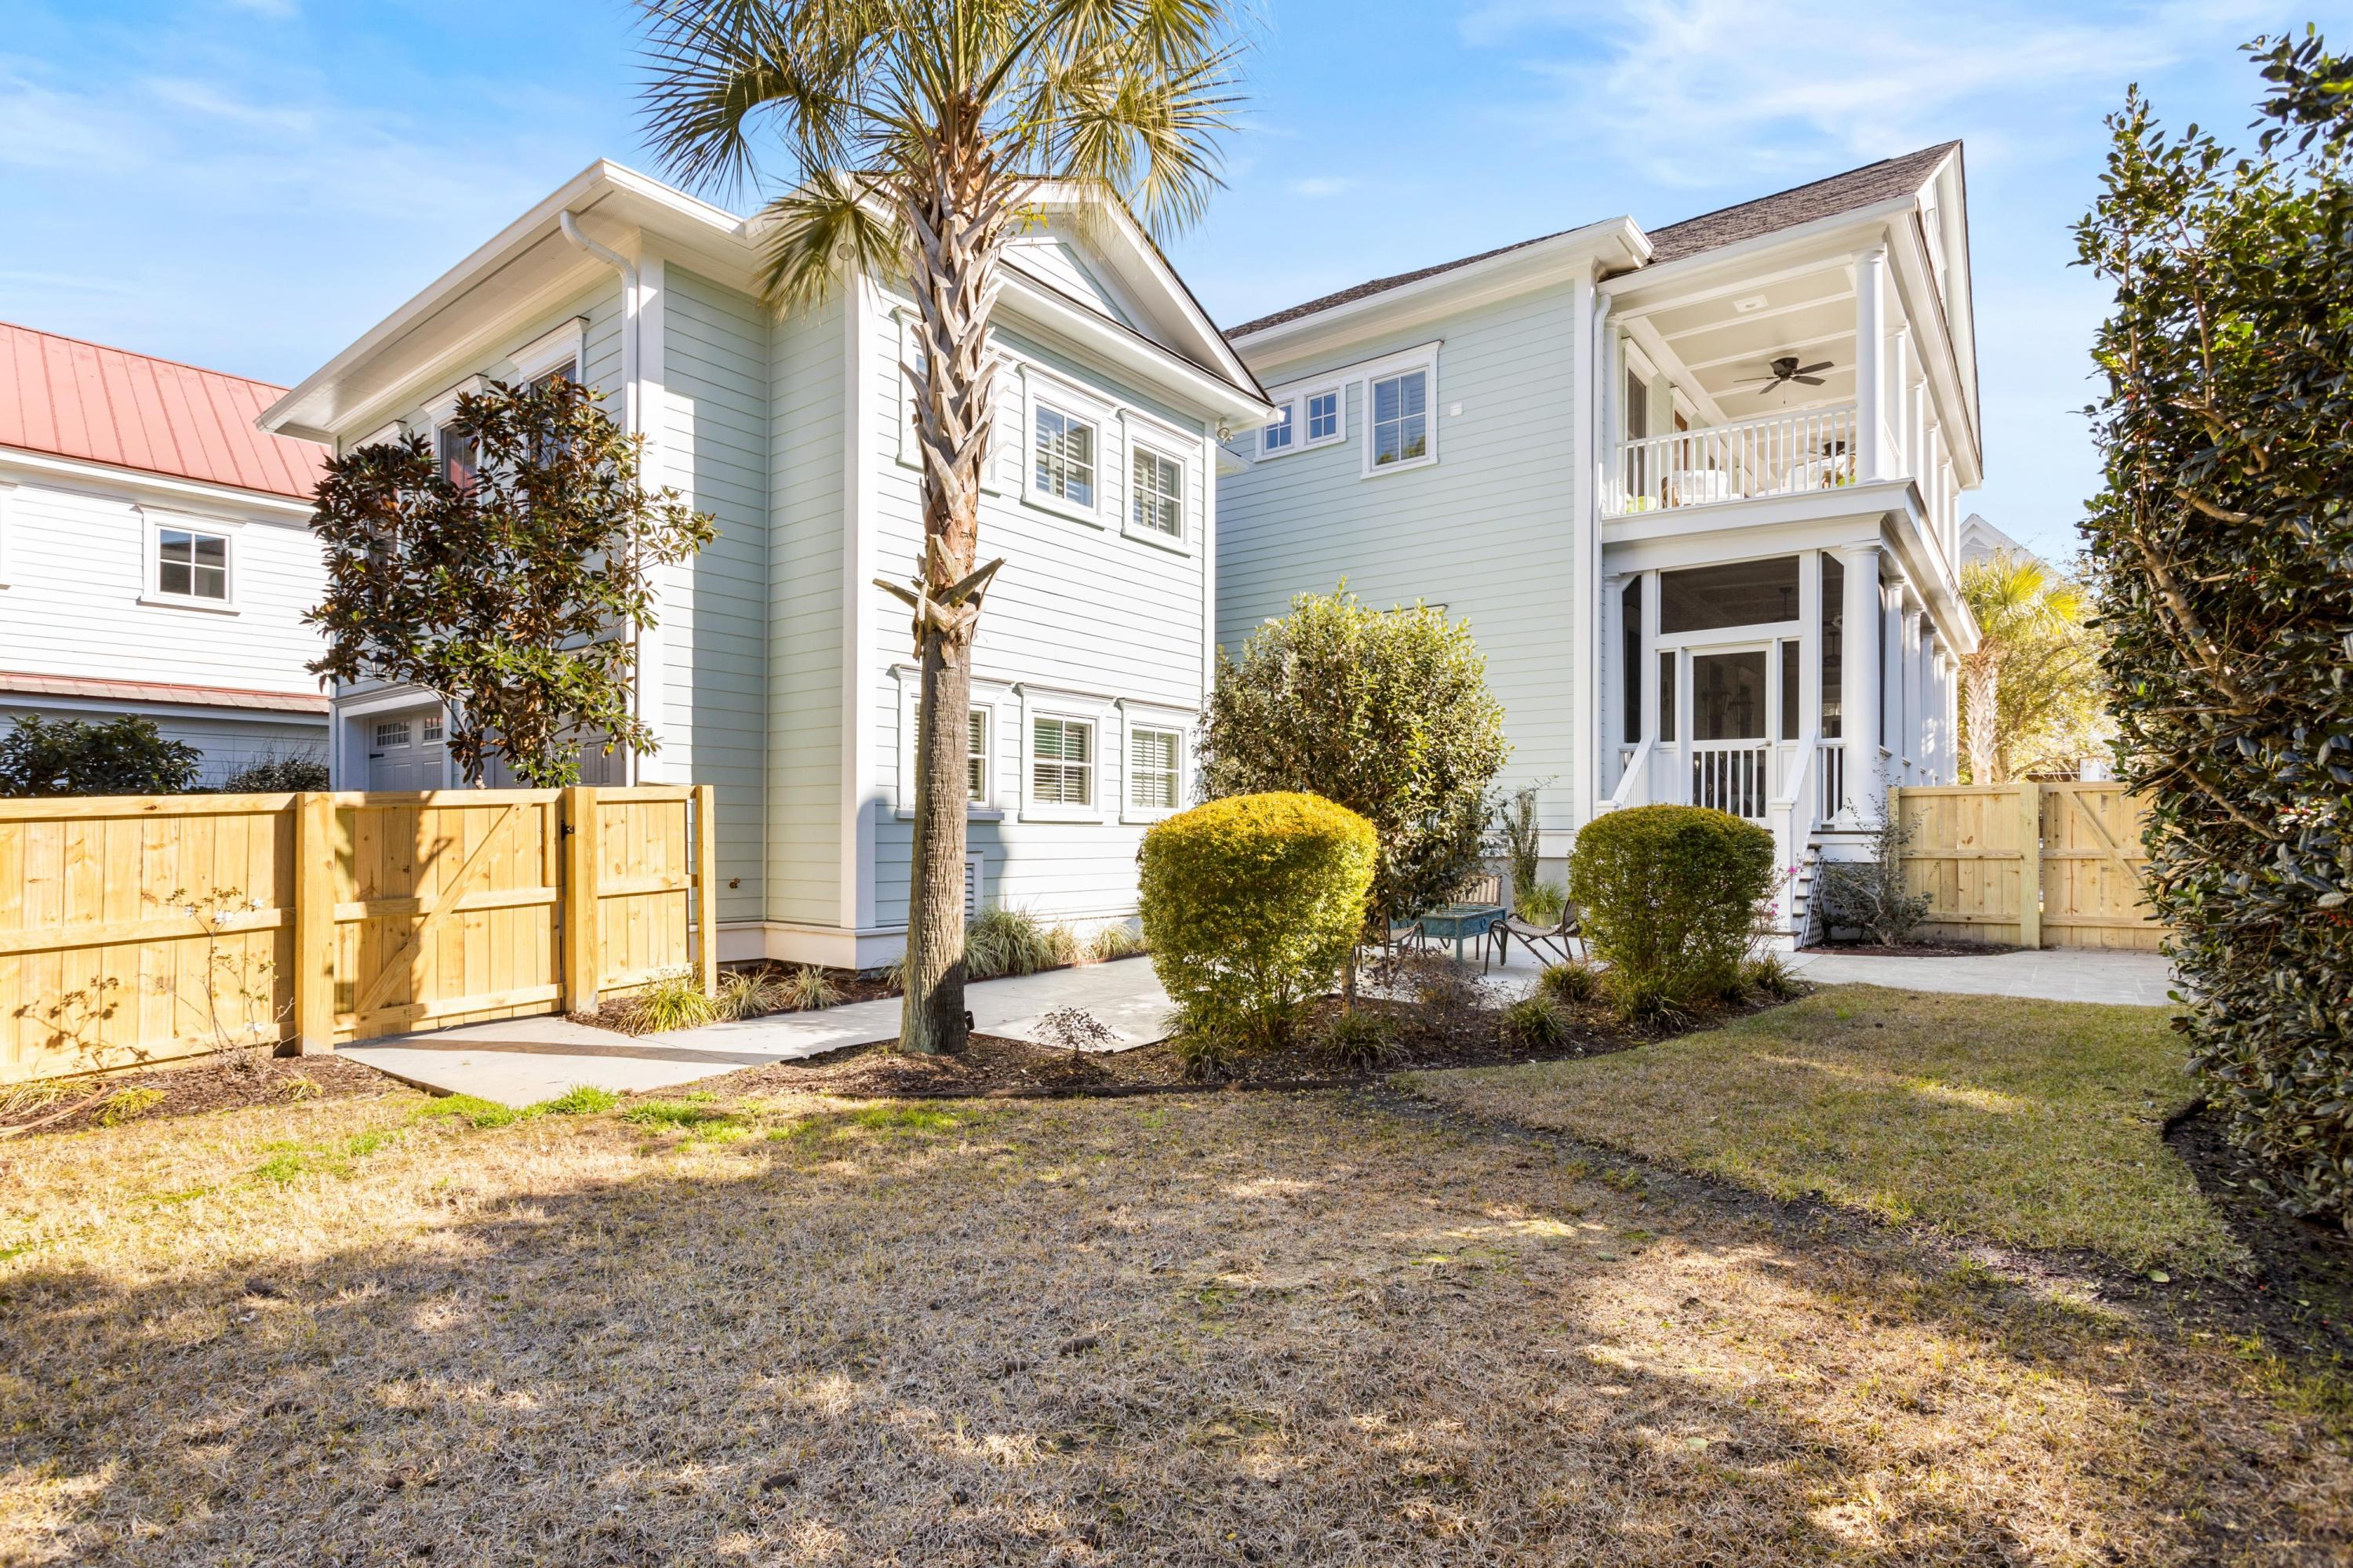 Belle Hall Homes For Sale - 740 Stucco, Mount Pleasant, SC - 54